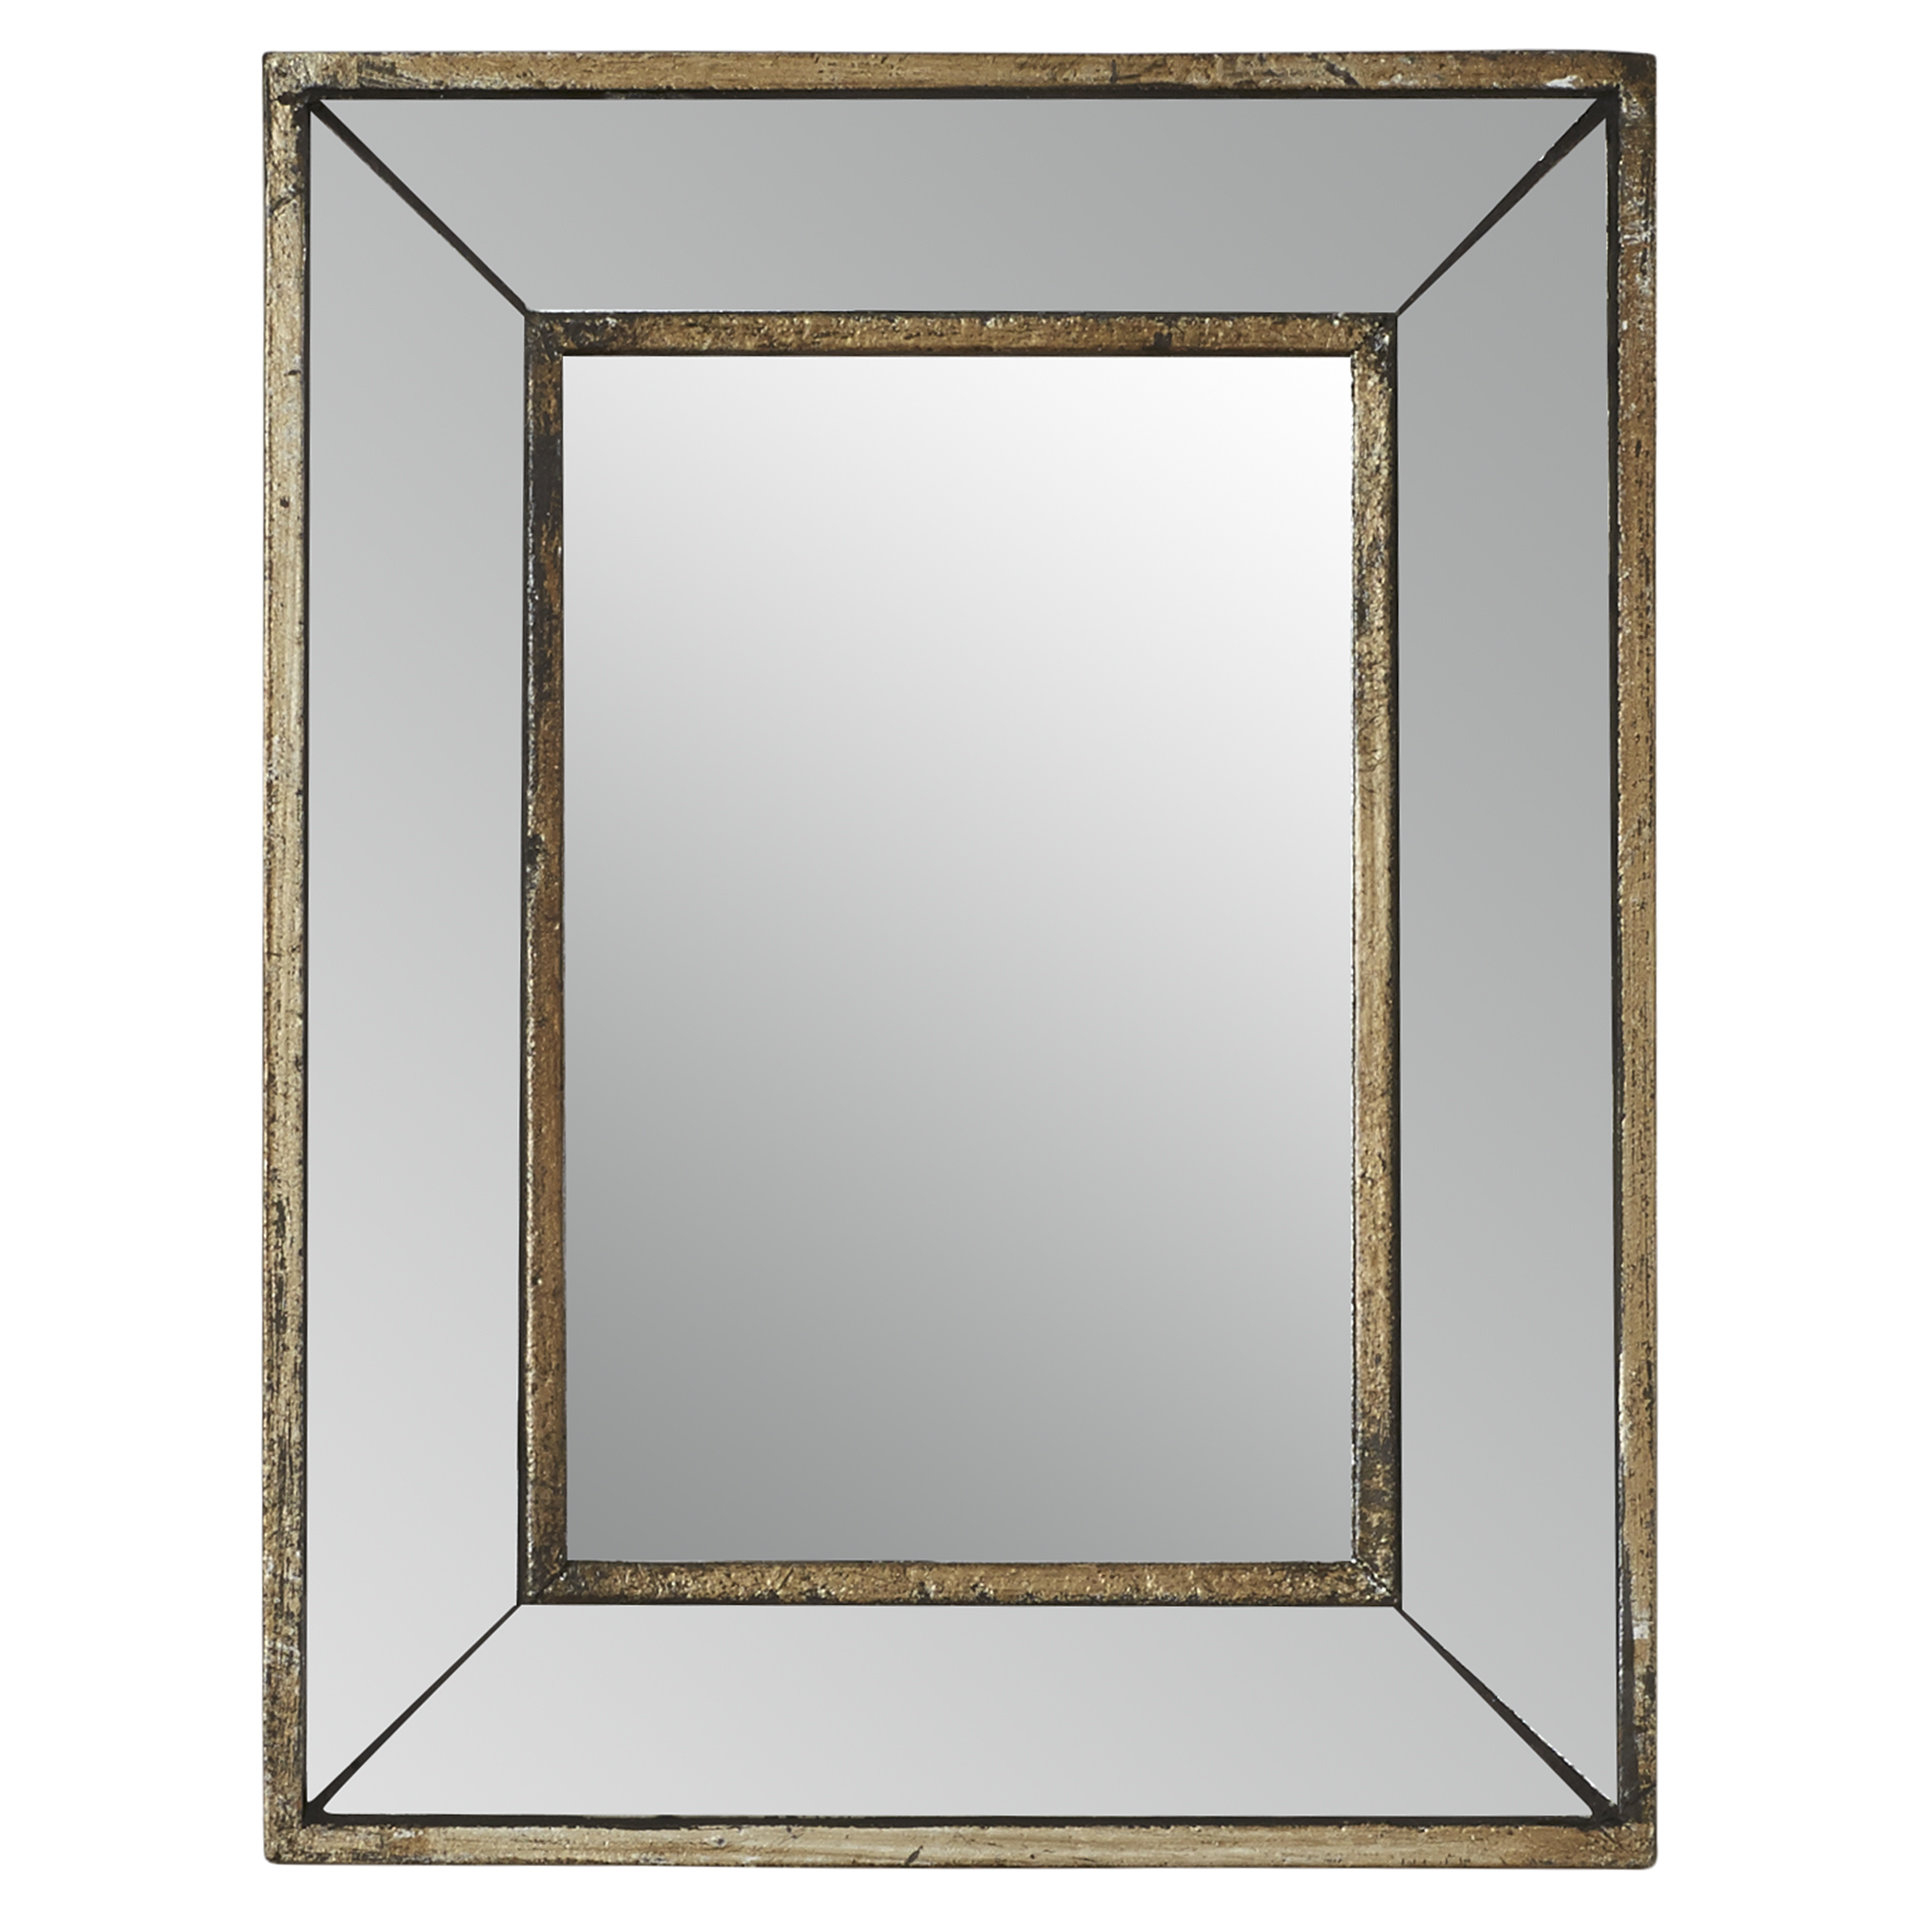 Auvillar Accent Mirror Within Lugo Rectangle Accent Mirrors (Image 3 of 20)